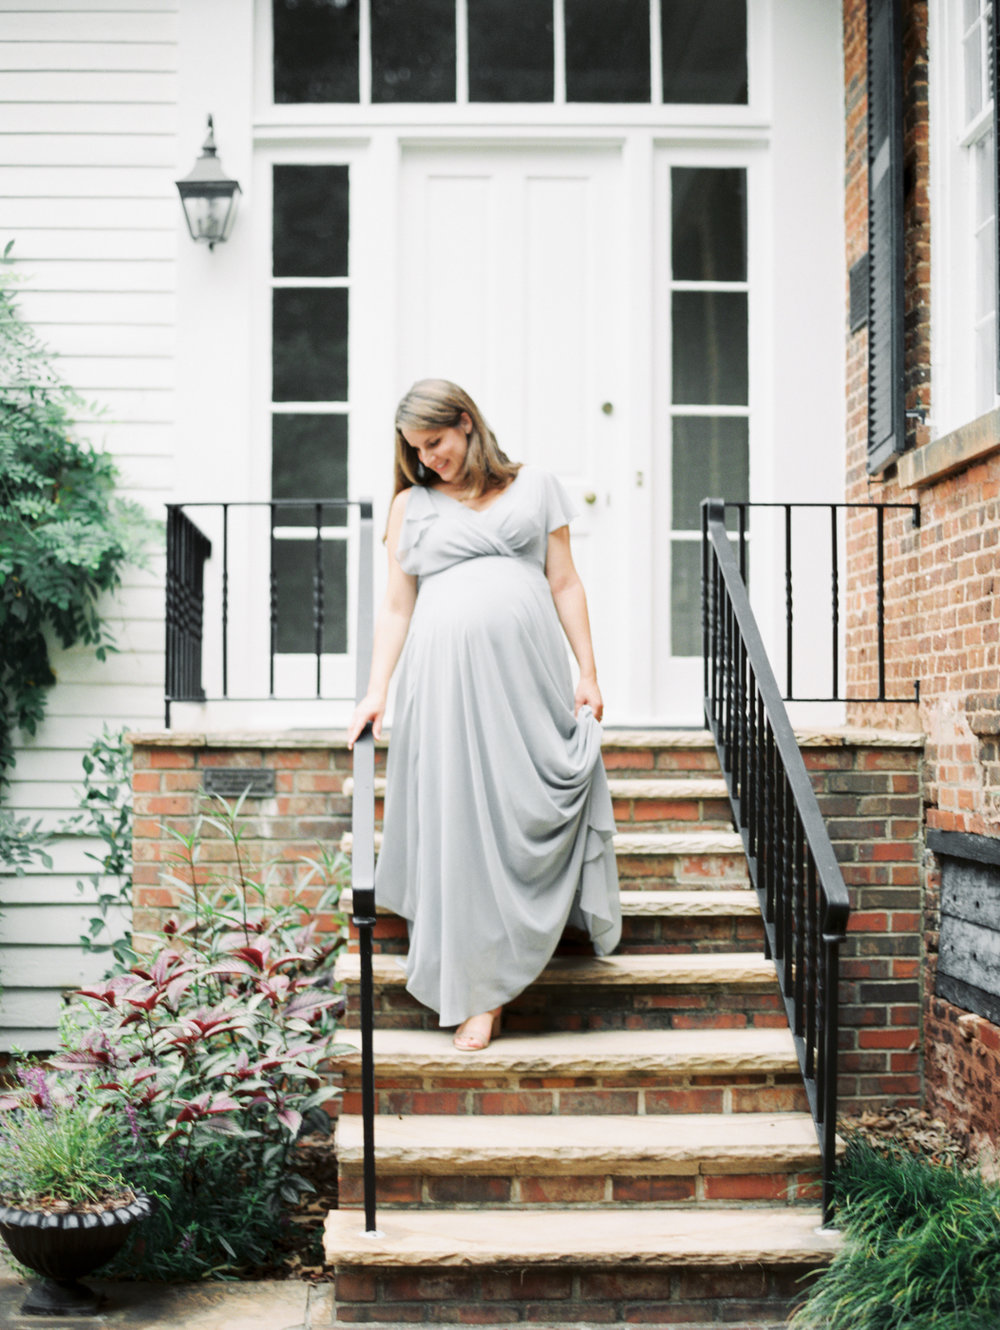 shackleford maternity four corners photography athens maternity photographer anna shackleford photography atlanta film photographer maternity photography-22.jpg